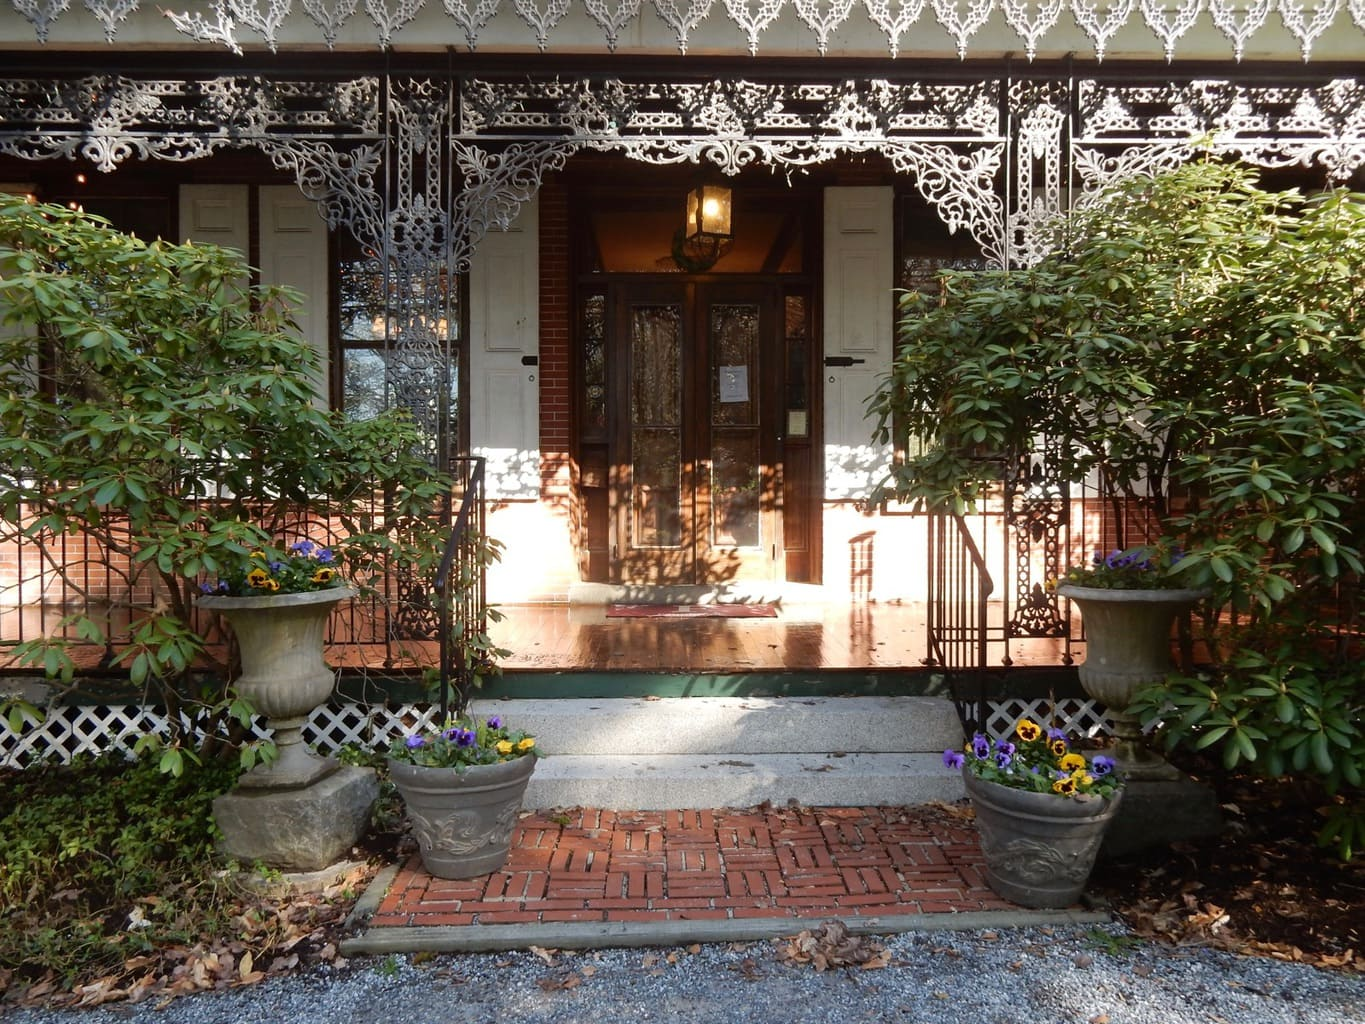 Entrance to Faunbrook BnB, West Chester PA